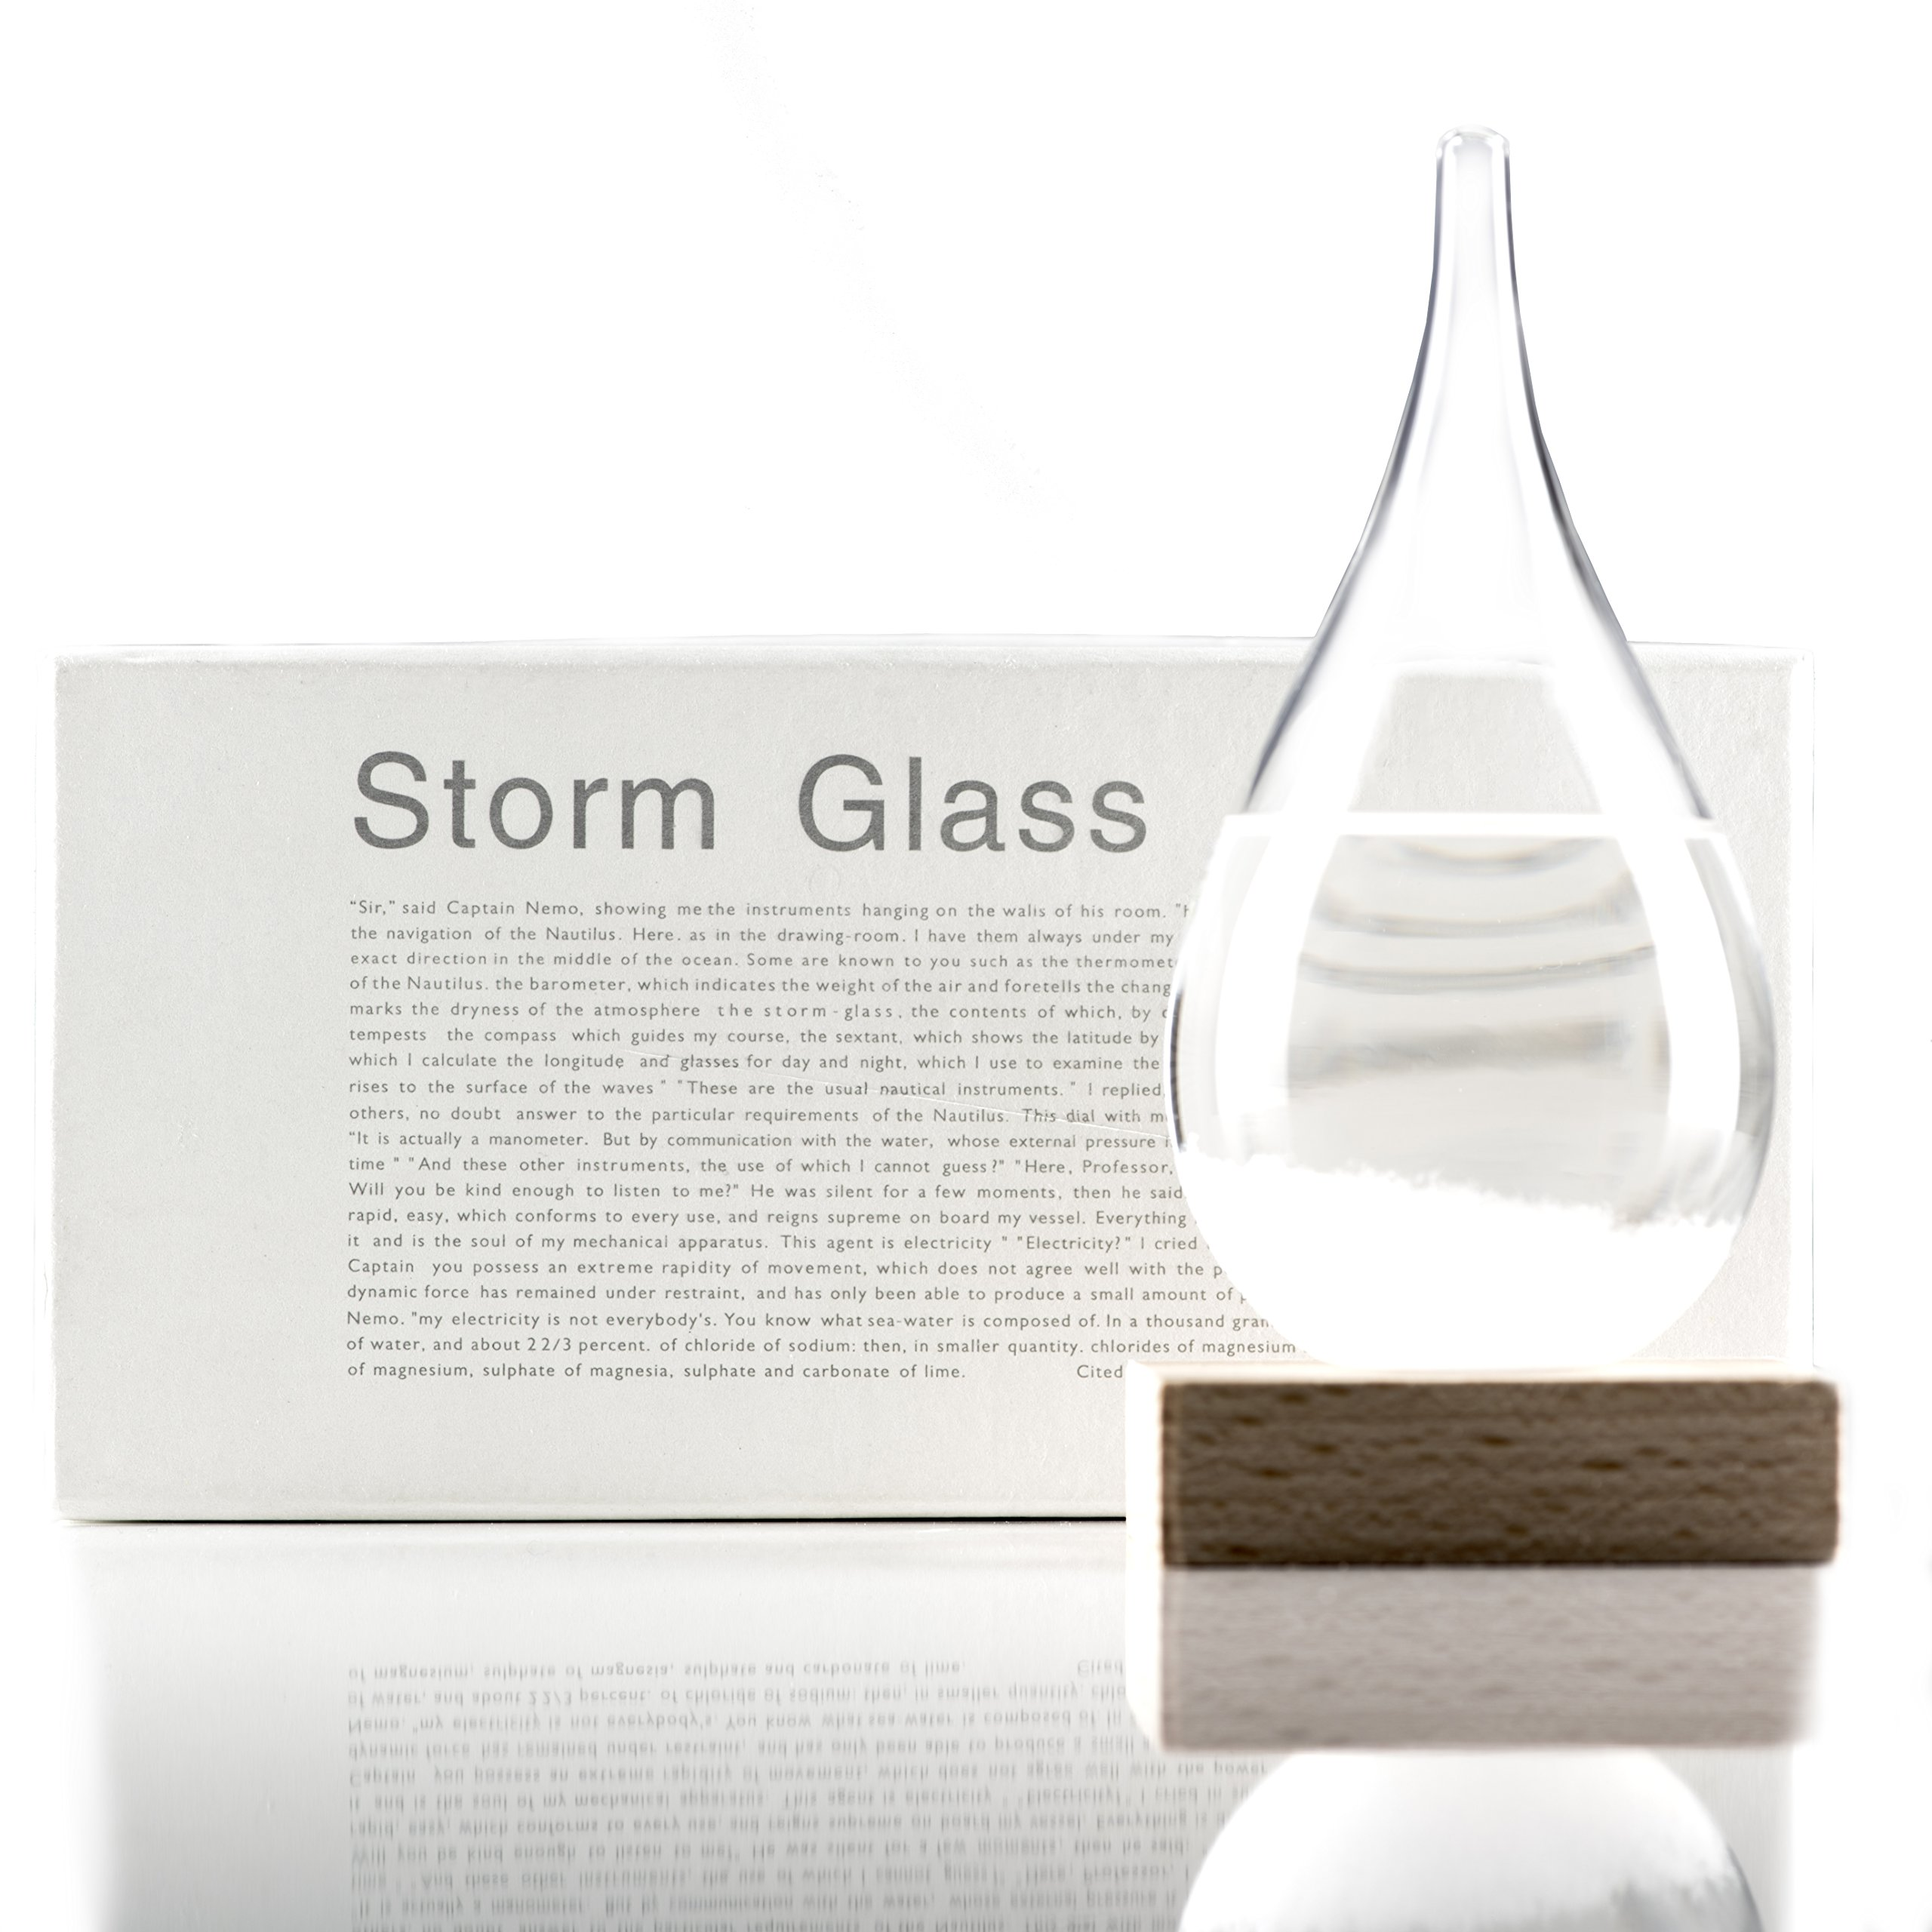 Storm Glass - Decorative and Unique Weather Forecaster - Antique Crystal Forecasting Predictor used by Admiral Fitzroy - Weather Predicting Storm Glass - Teardrop Shaped Barometer with Wooden Base